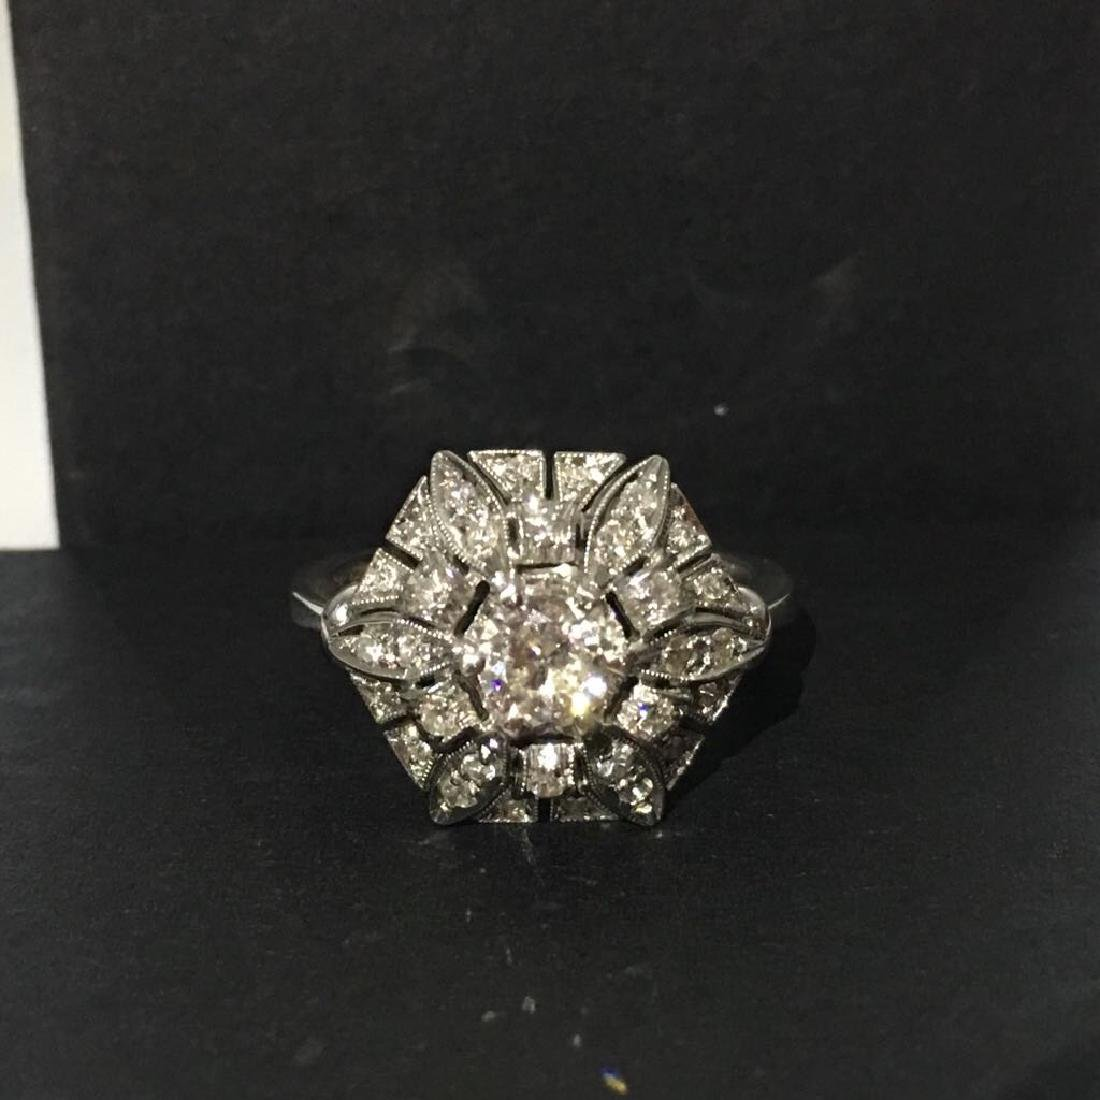 18K White Gold, 2.05 Carat VS-G Vintage Diamond Ring